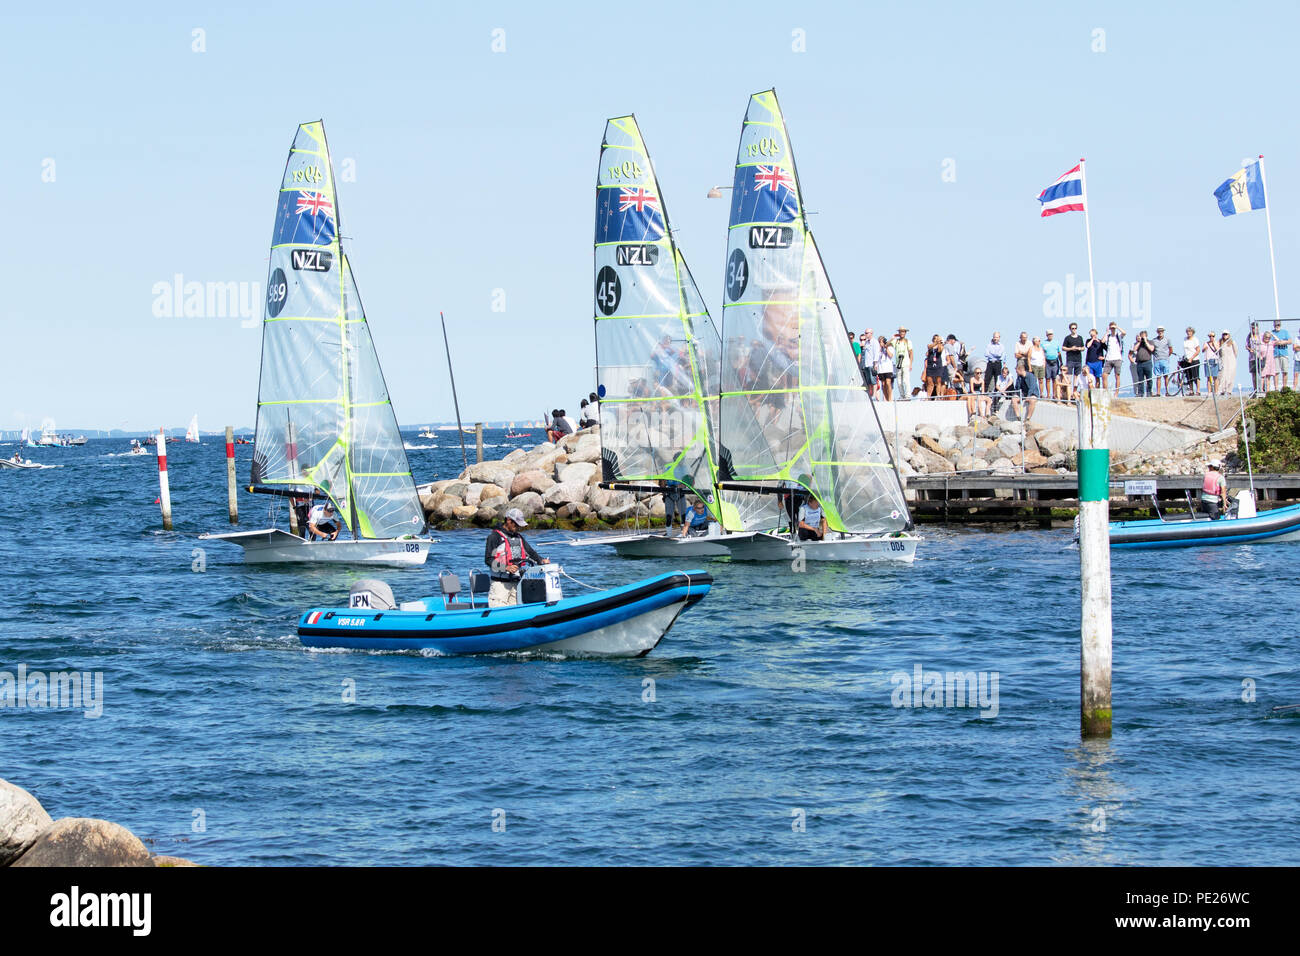 Aarhus, Denmark is hosting the 2018 Hempel Sailing World Championships from 30 July to 12 August 2018. More than 1,400 sailors from 85 nations are racing across ten Olympic sailing disciplines as well as Men's and Women's Kiteboarding.  40% of Tokyo 2020 Olympic Sailing Competition places will be awarded in Aarhus as well as 12 World Championship medals. - Stock Image